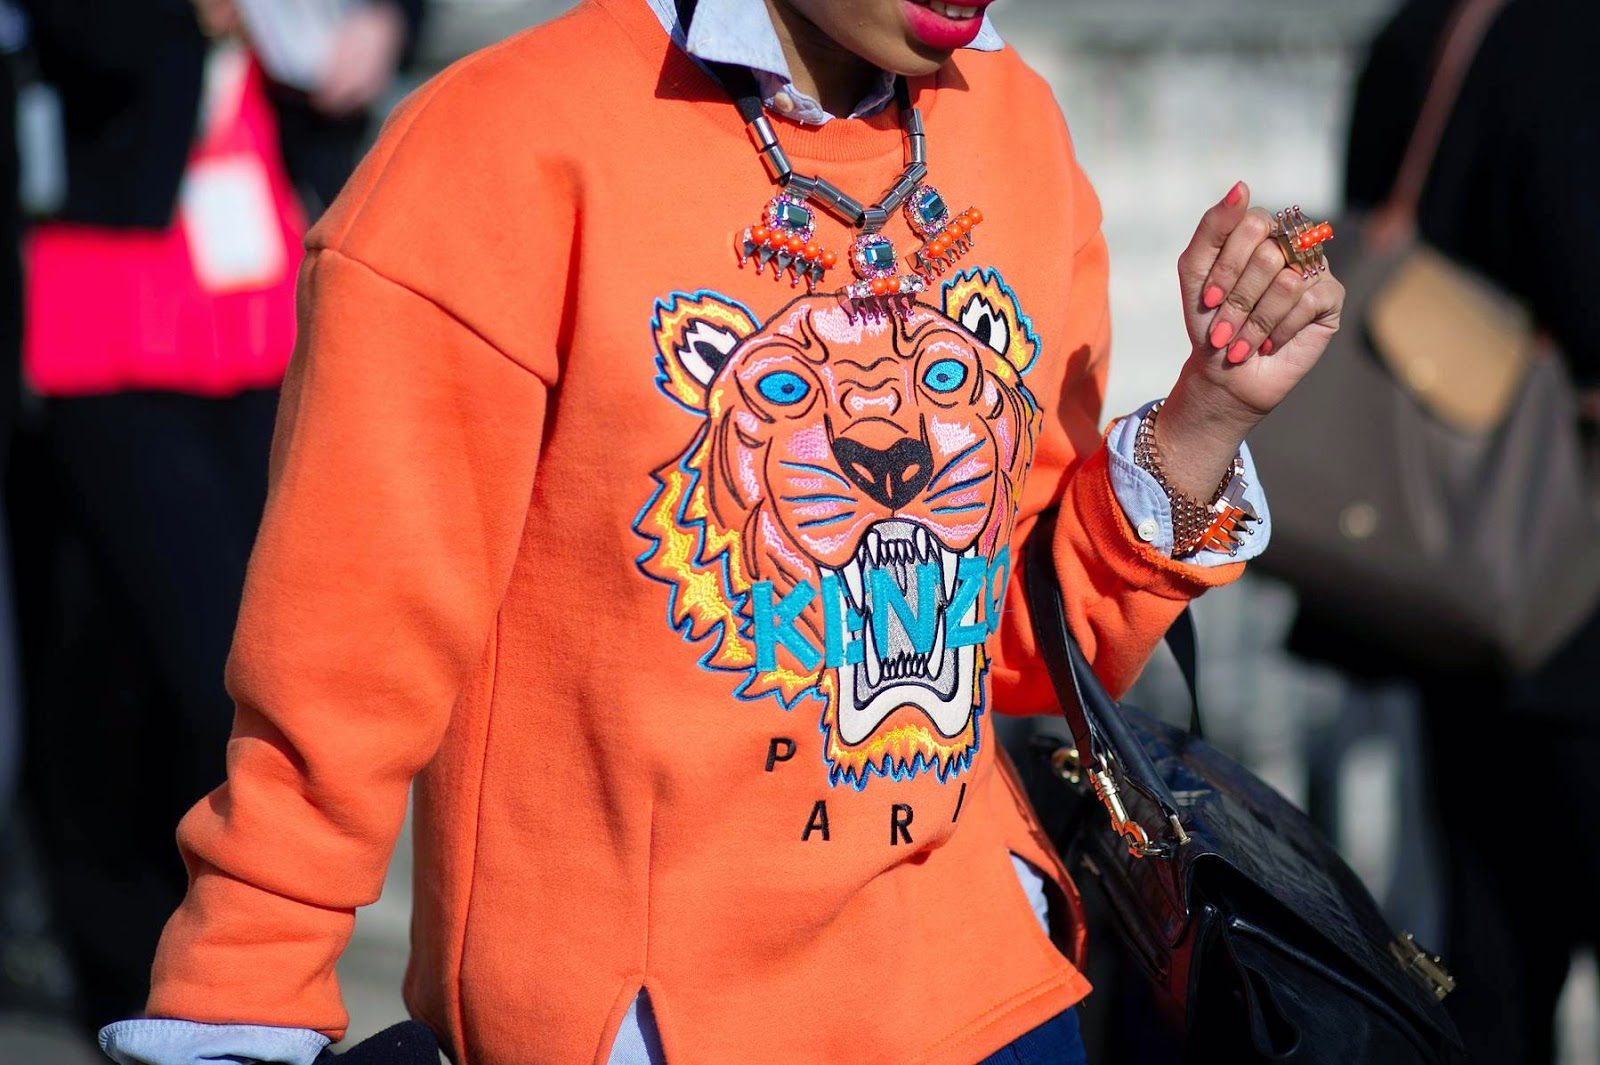 2015 Trends Inspiration: Orange is the new black